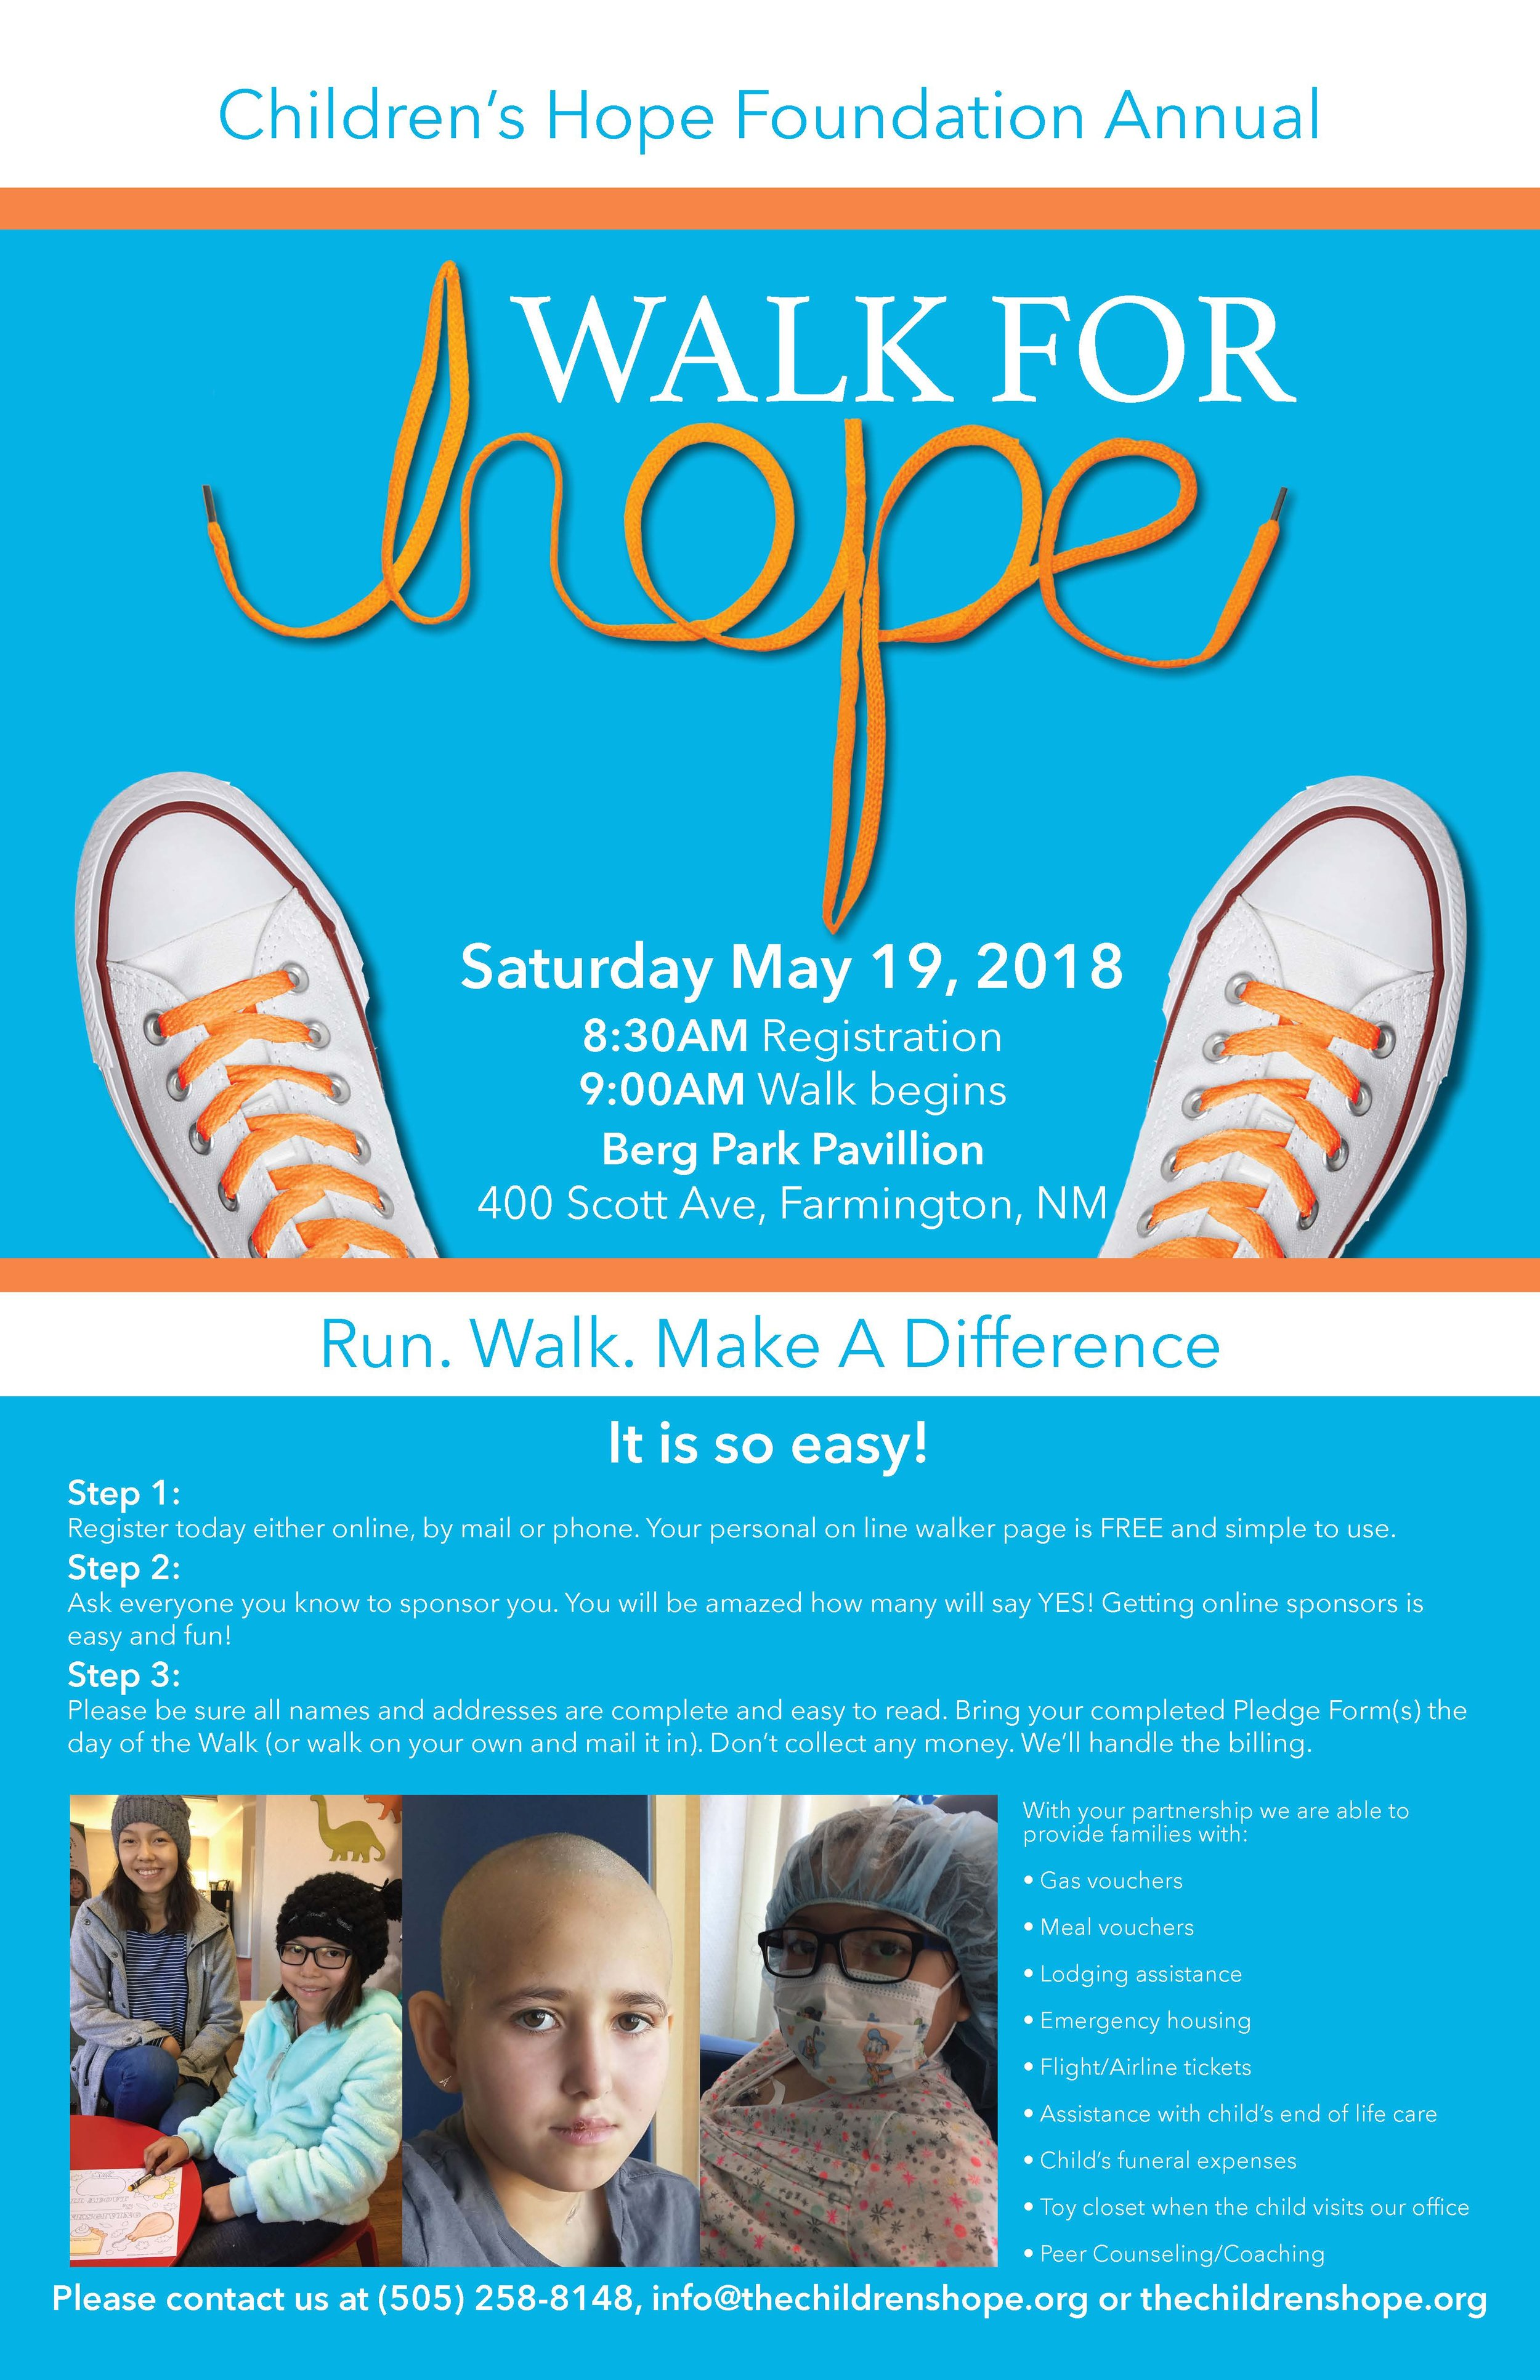 Walk For Hope - Children's Hope Annual fun walk fundraiser.I created all promo material and website page creation.